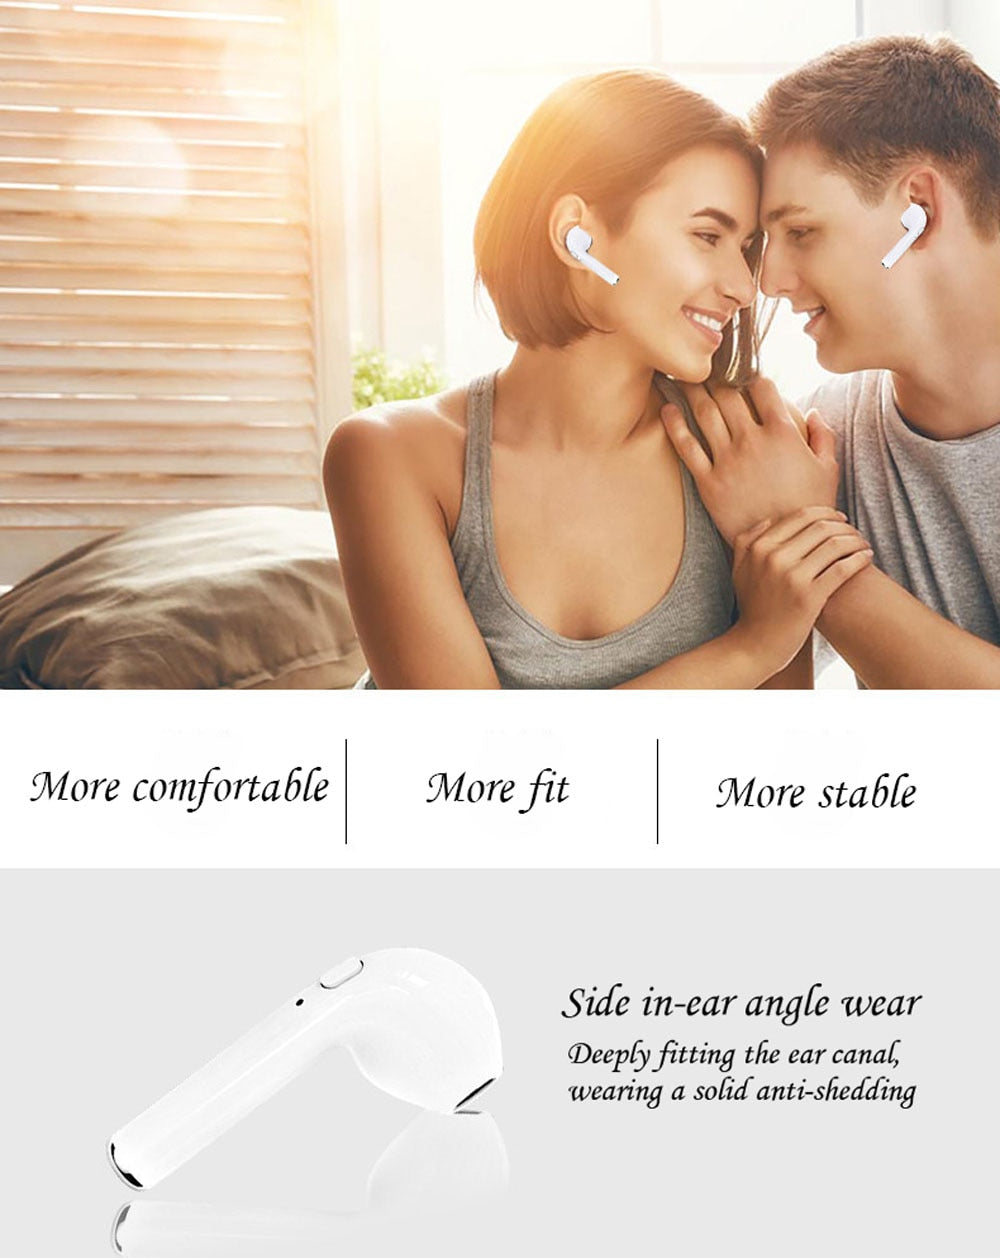 Wireless Bluetooth  In-Ear Earbuds Set - The JfJ